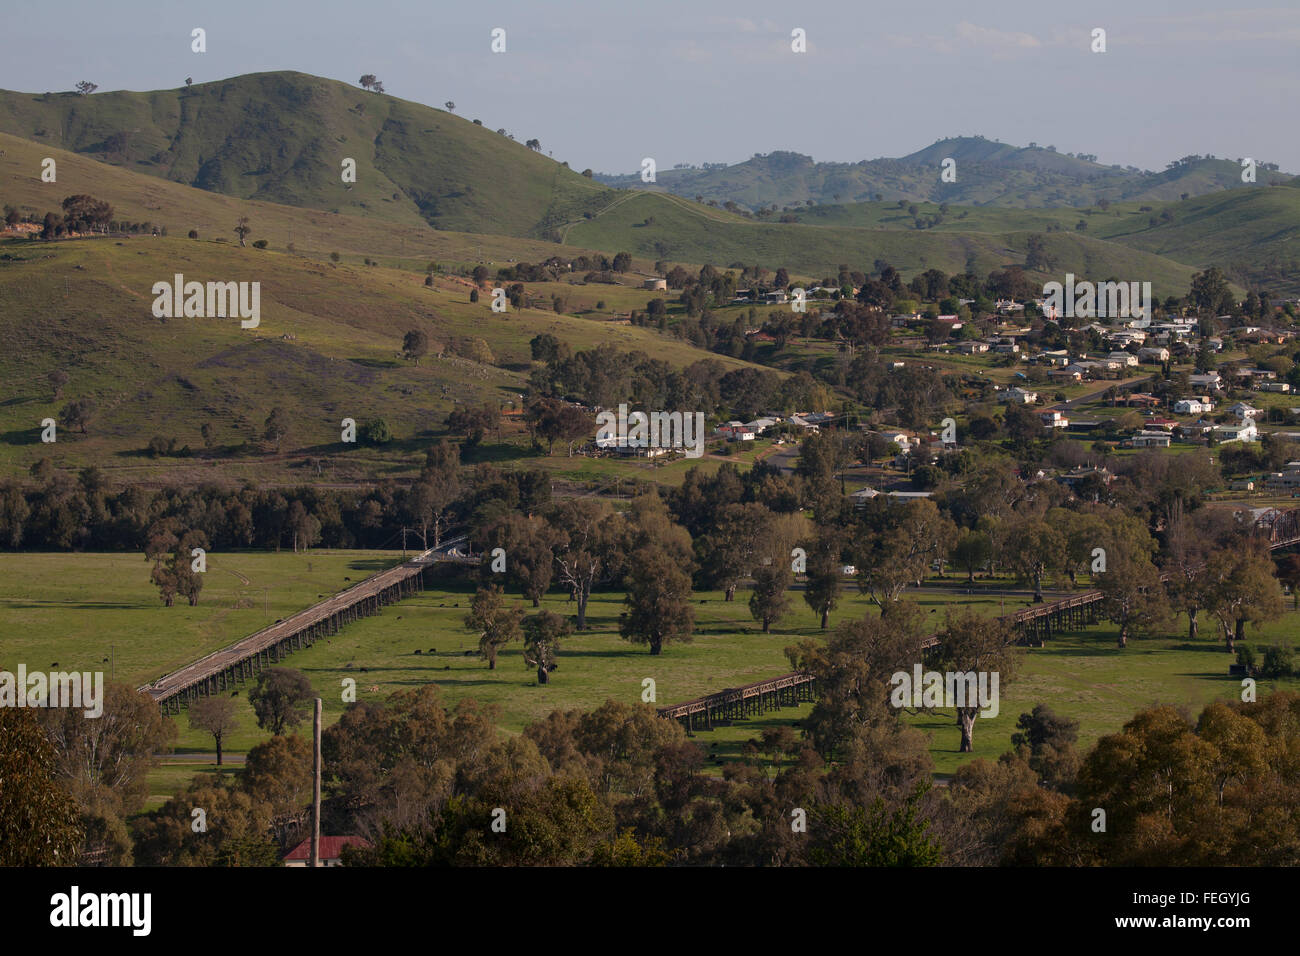 2722 Stock Photos & 2722 Stock Images - Page 2 - Alamy